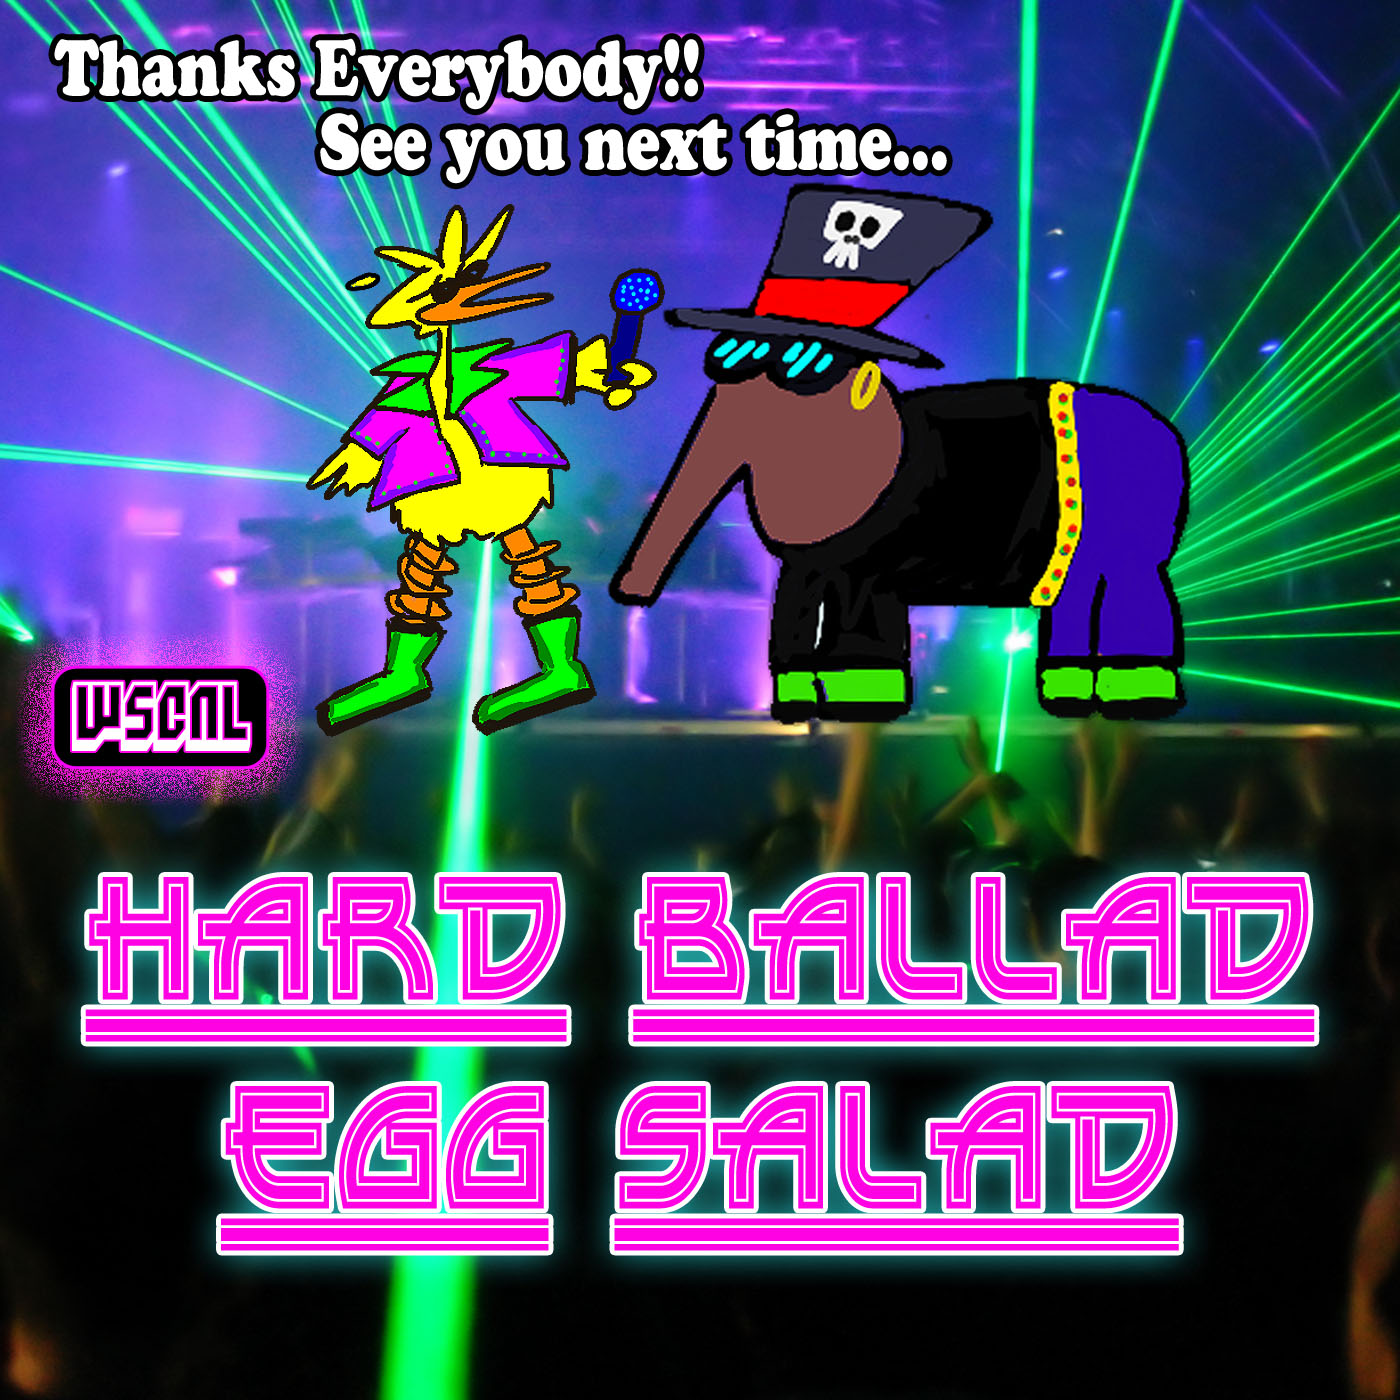 Art for We'll Remember YOU and EGGS! by Hard Ballad Egg Salad